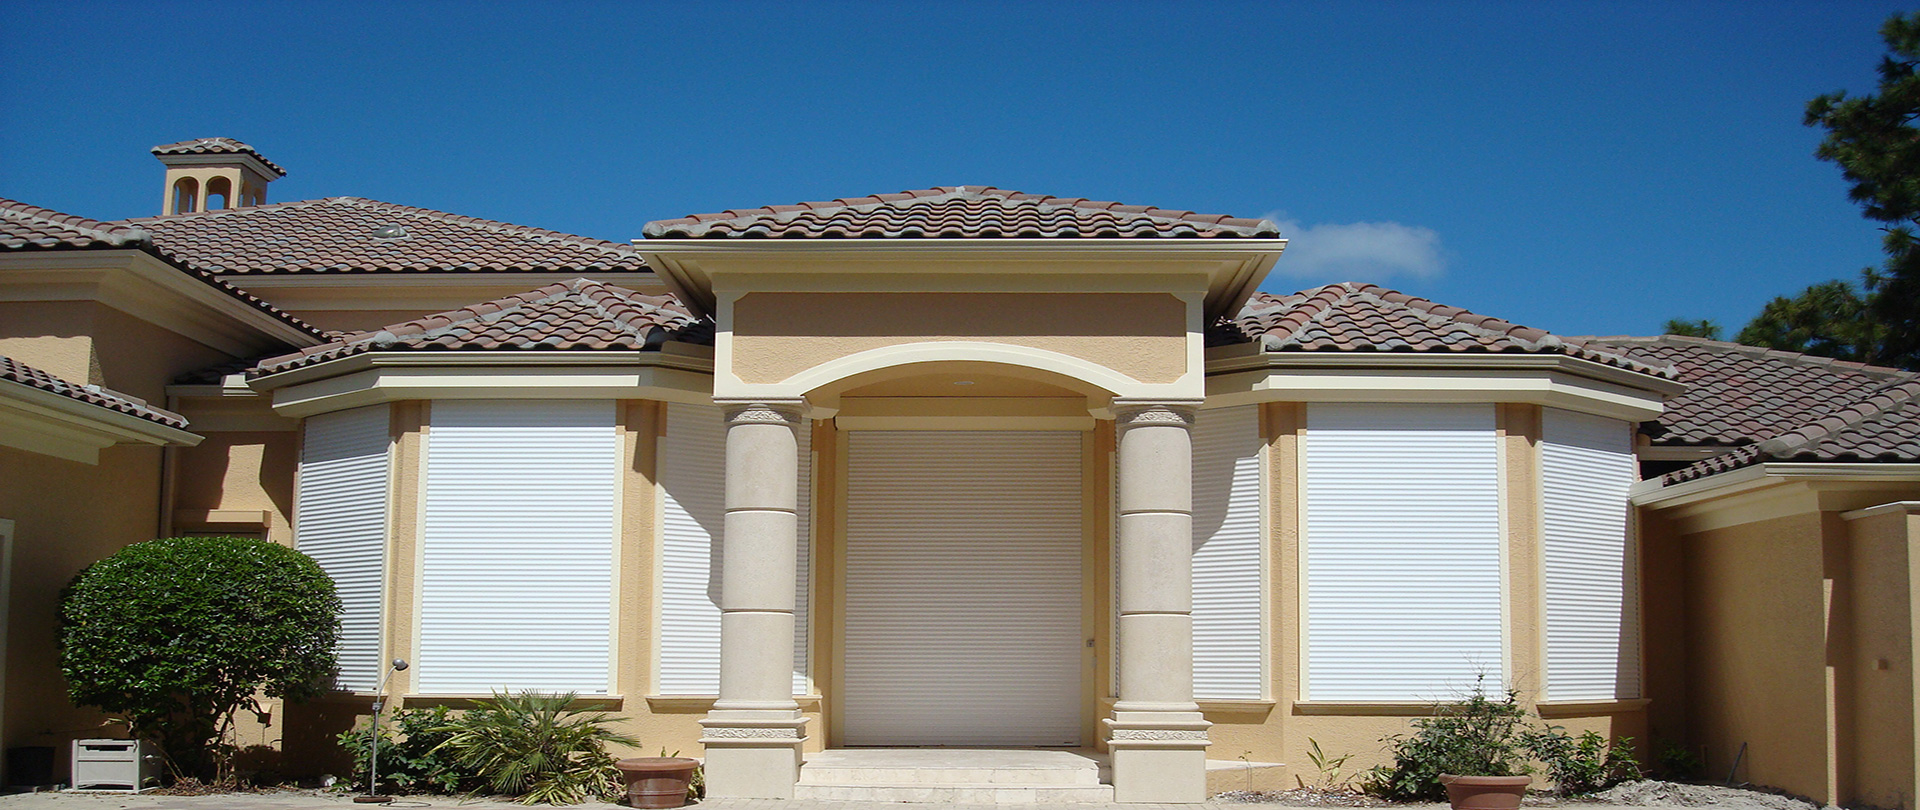 Awnings & Storm Protection